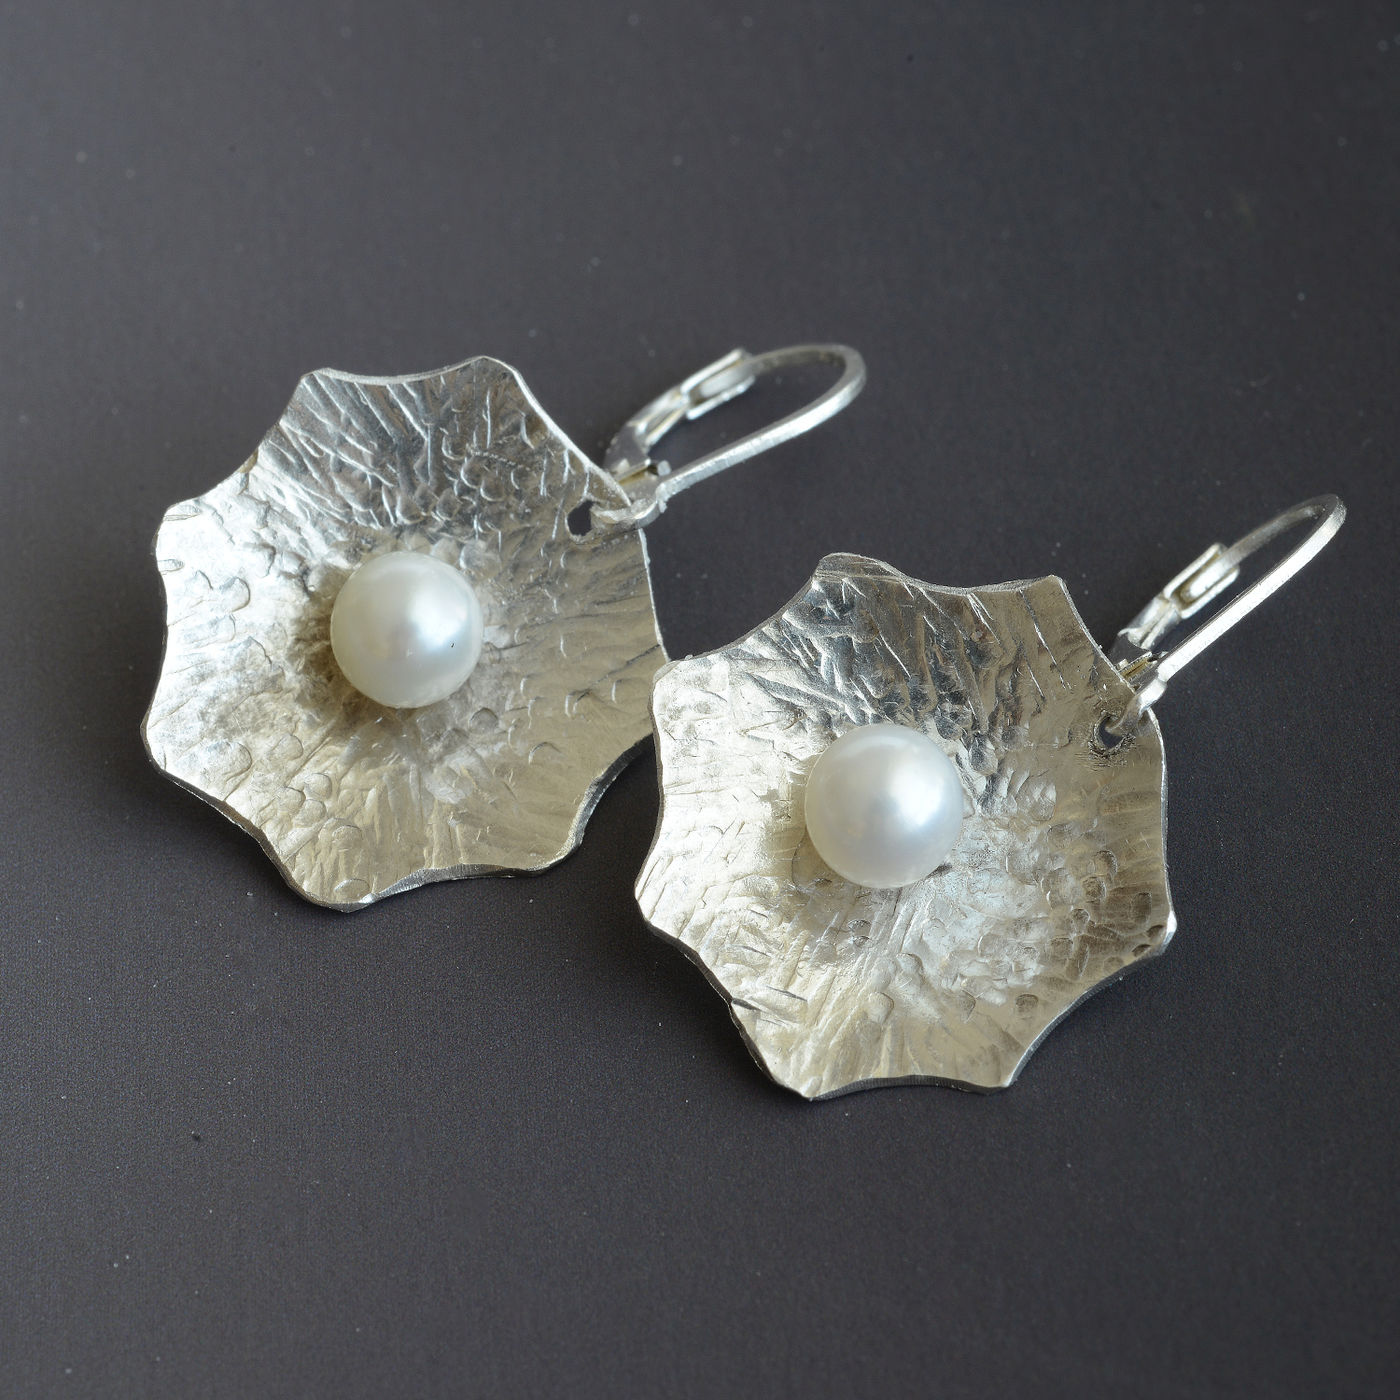 E18013- Forged sterling silver petals with pearls